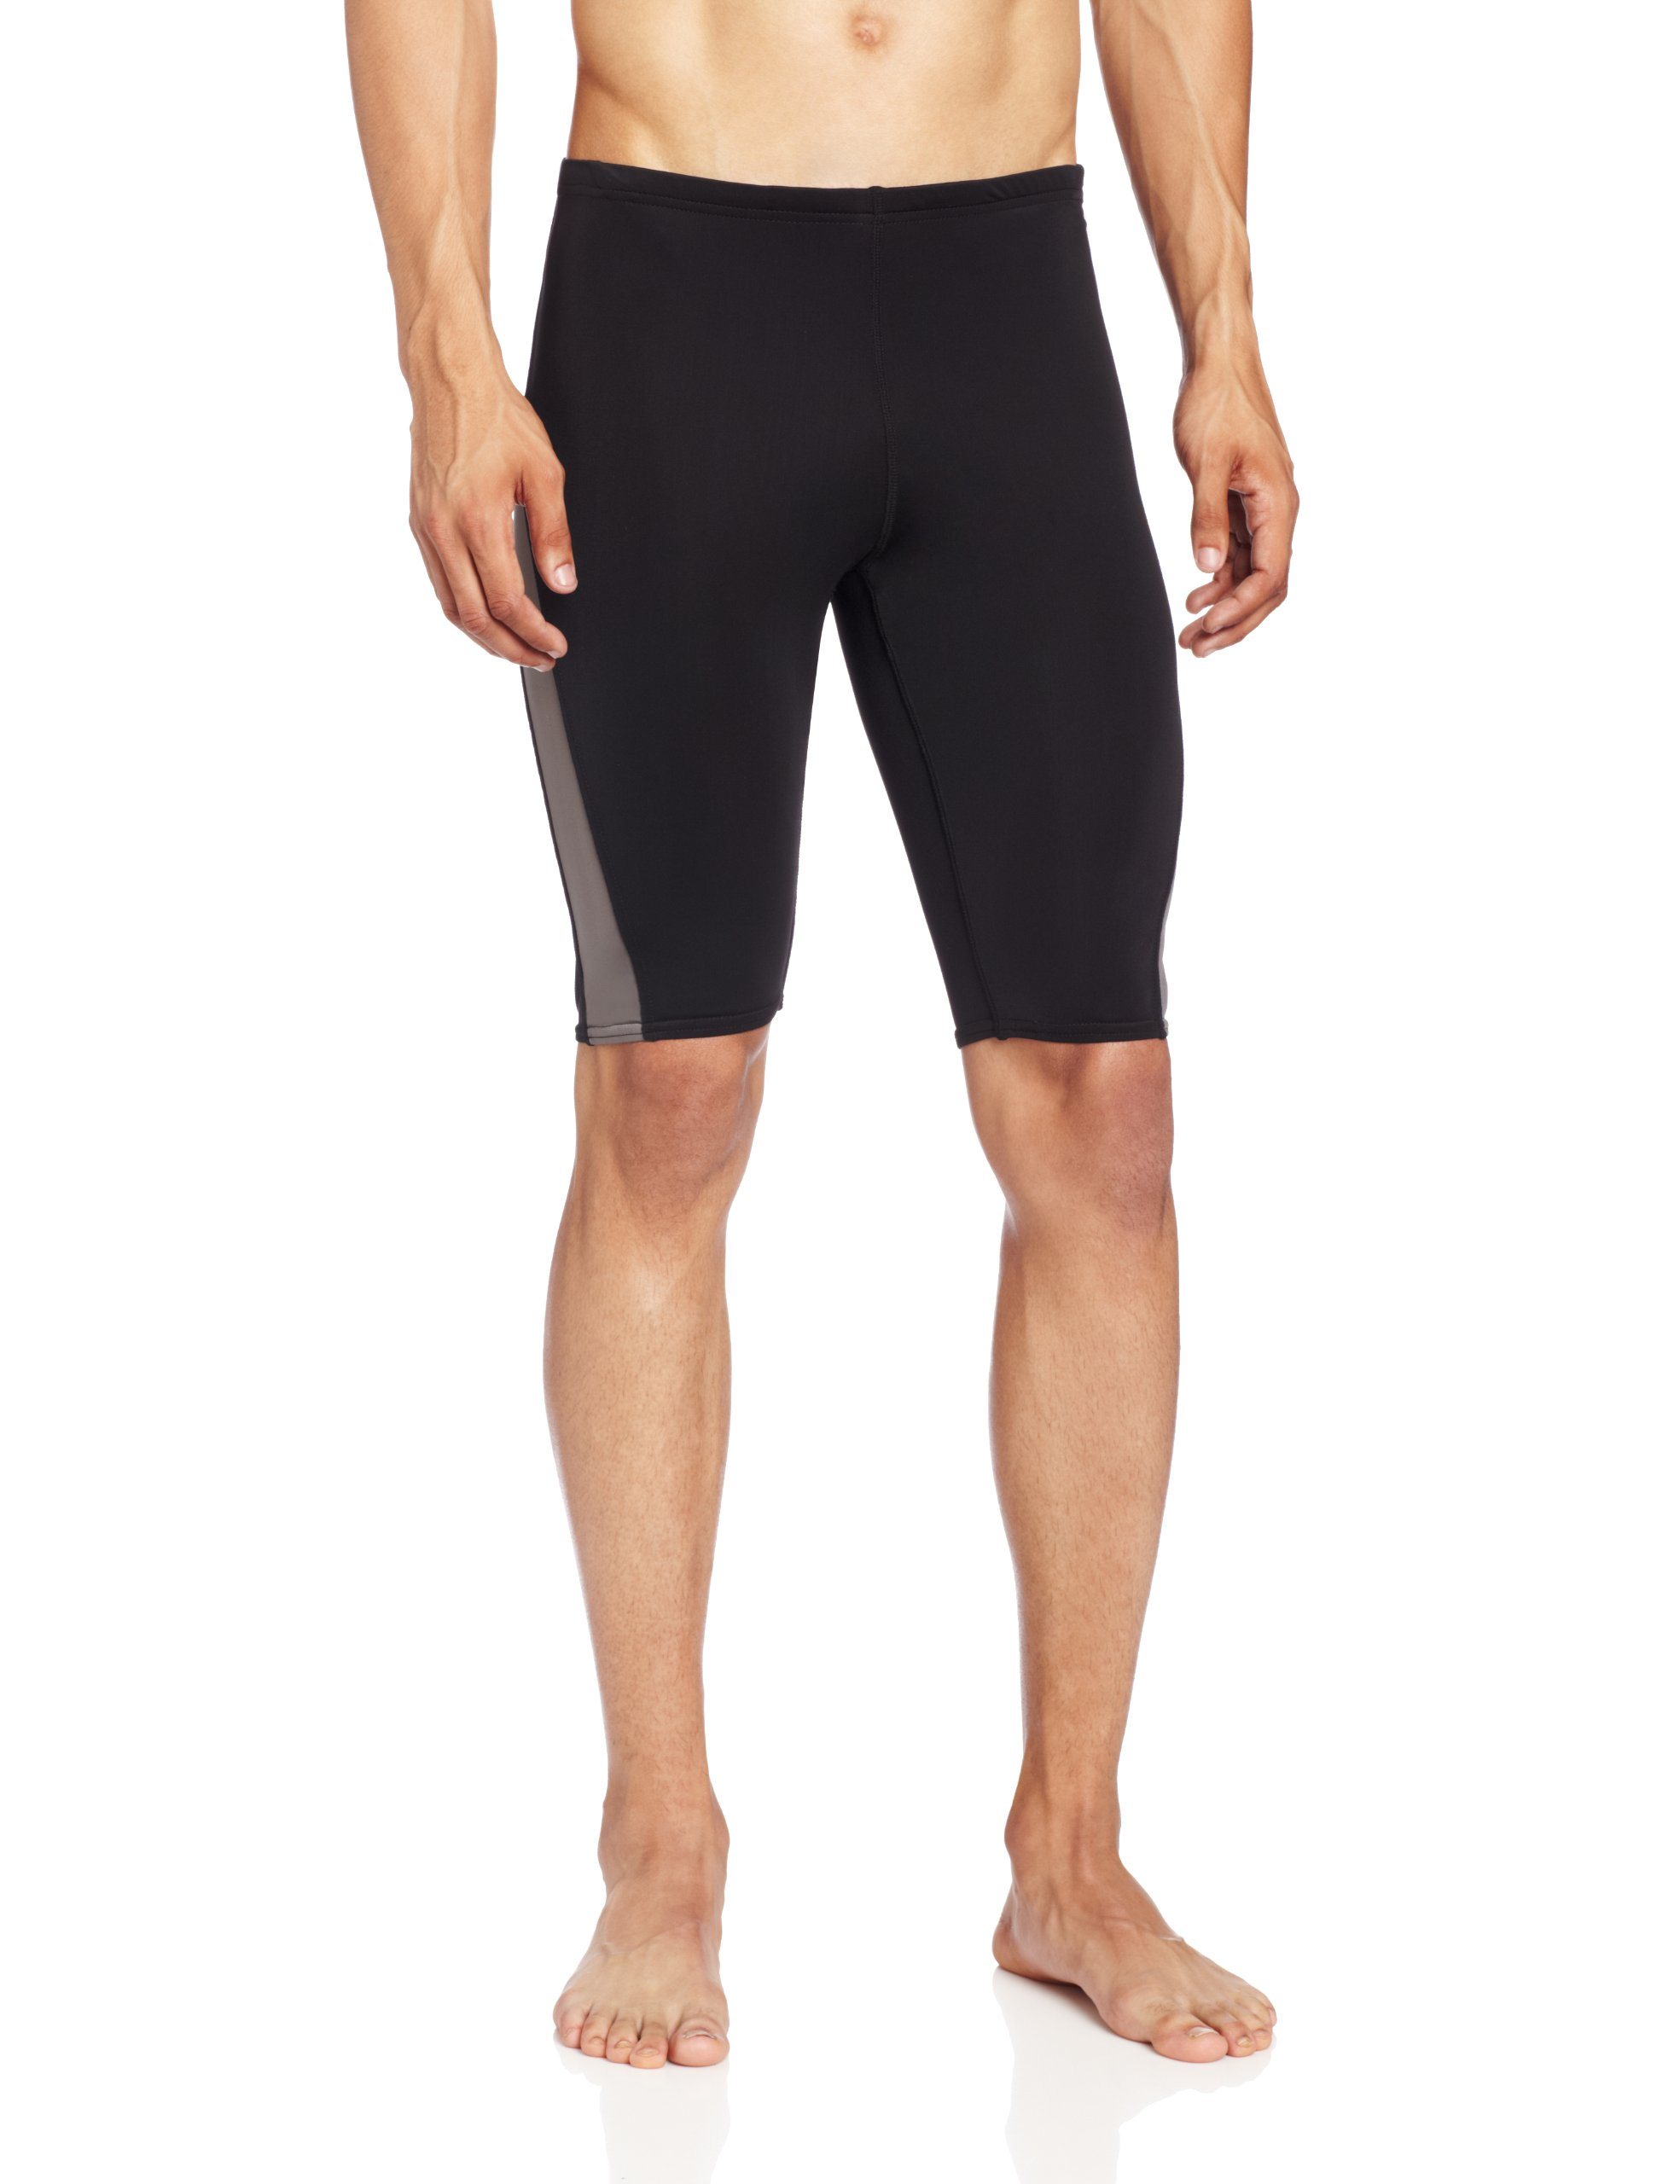 Kanu Surf Men's Competition Jammers Swim Suit, Black/Grey, 34 by Kanu Surf